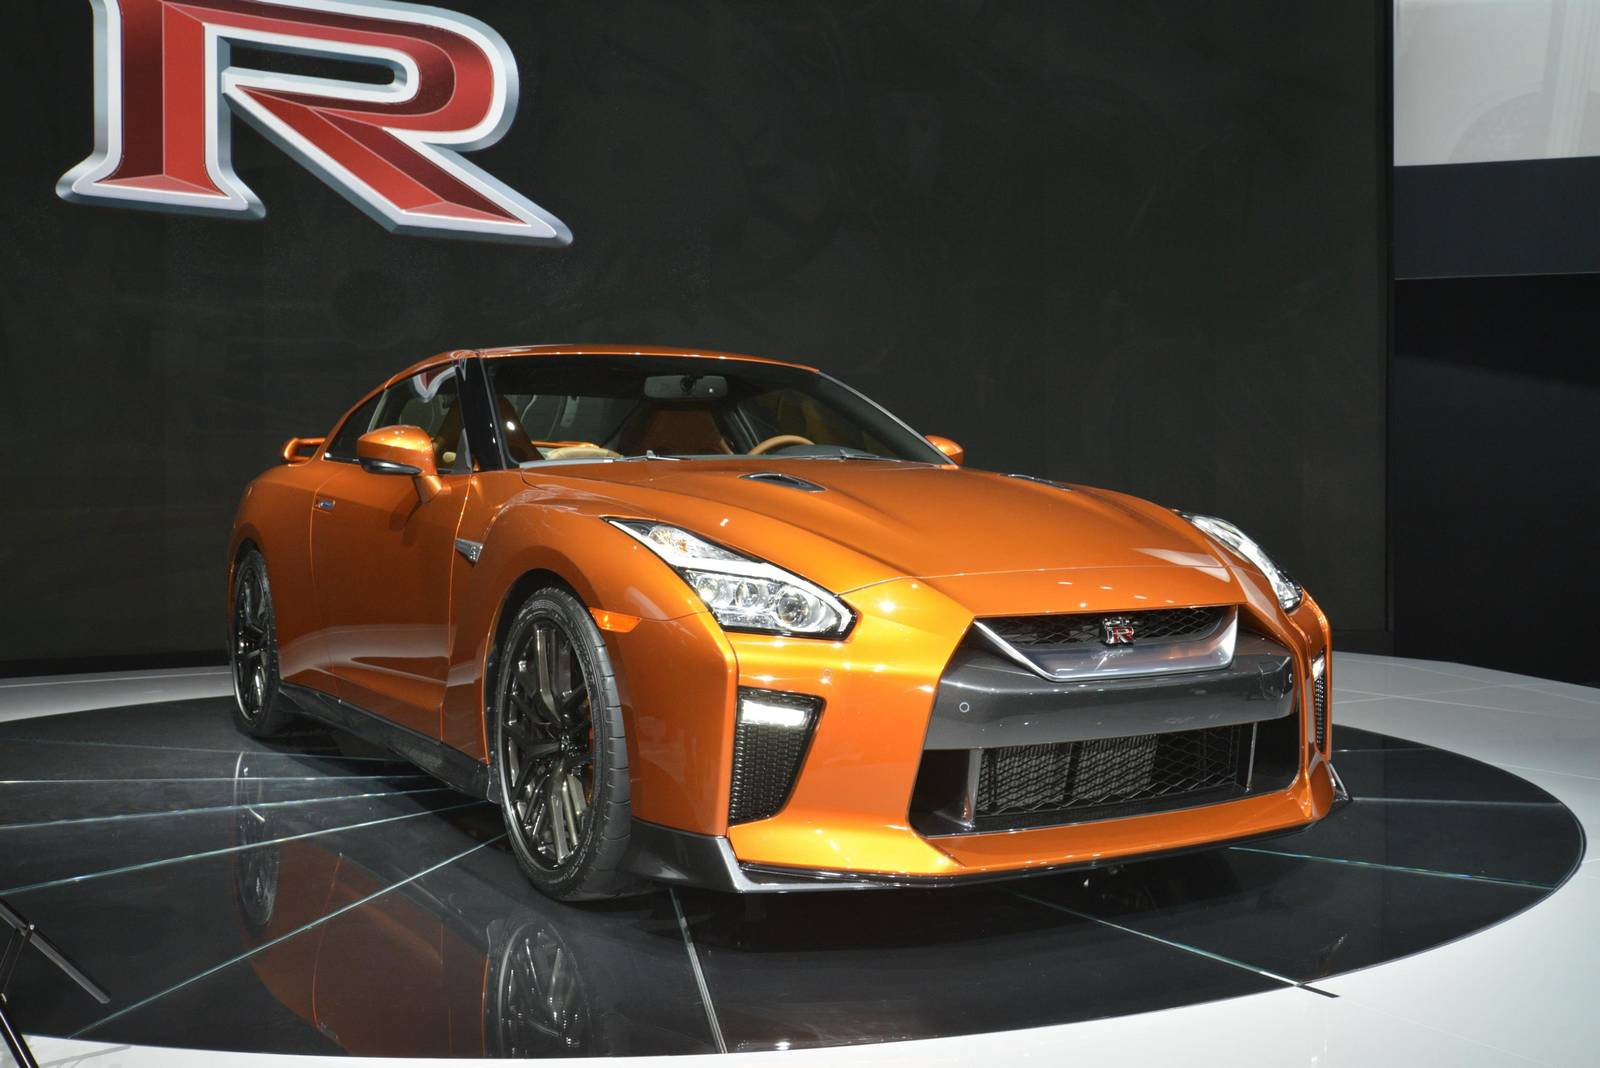 2017 nissan gt r convertible imagined gtspirit. Black Bedroom Furniture Sets. Home Design Ideas